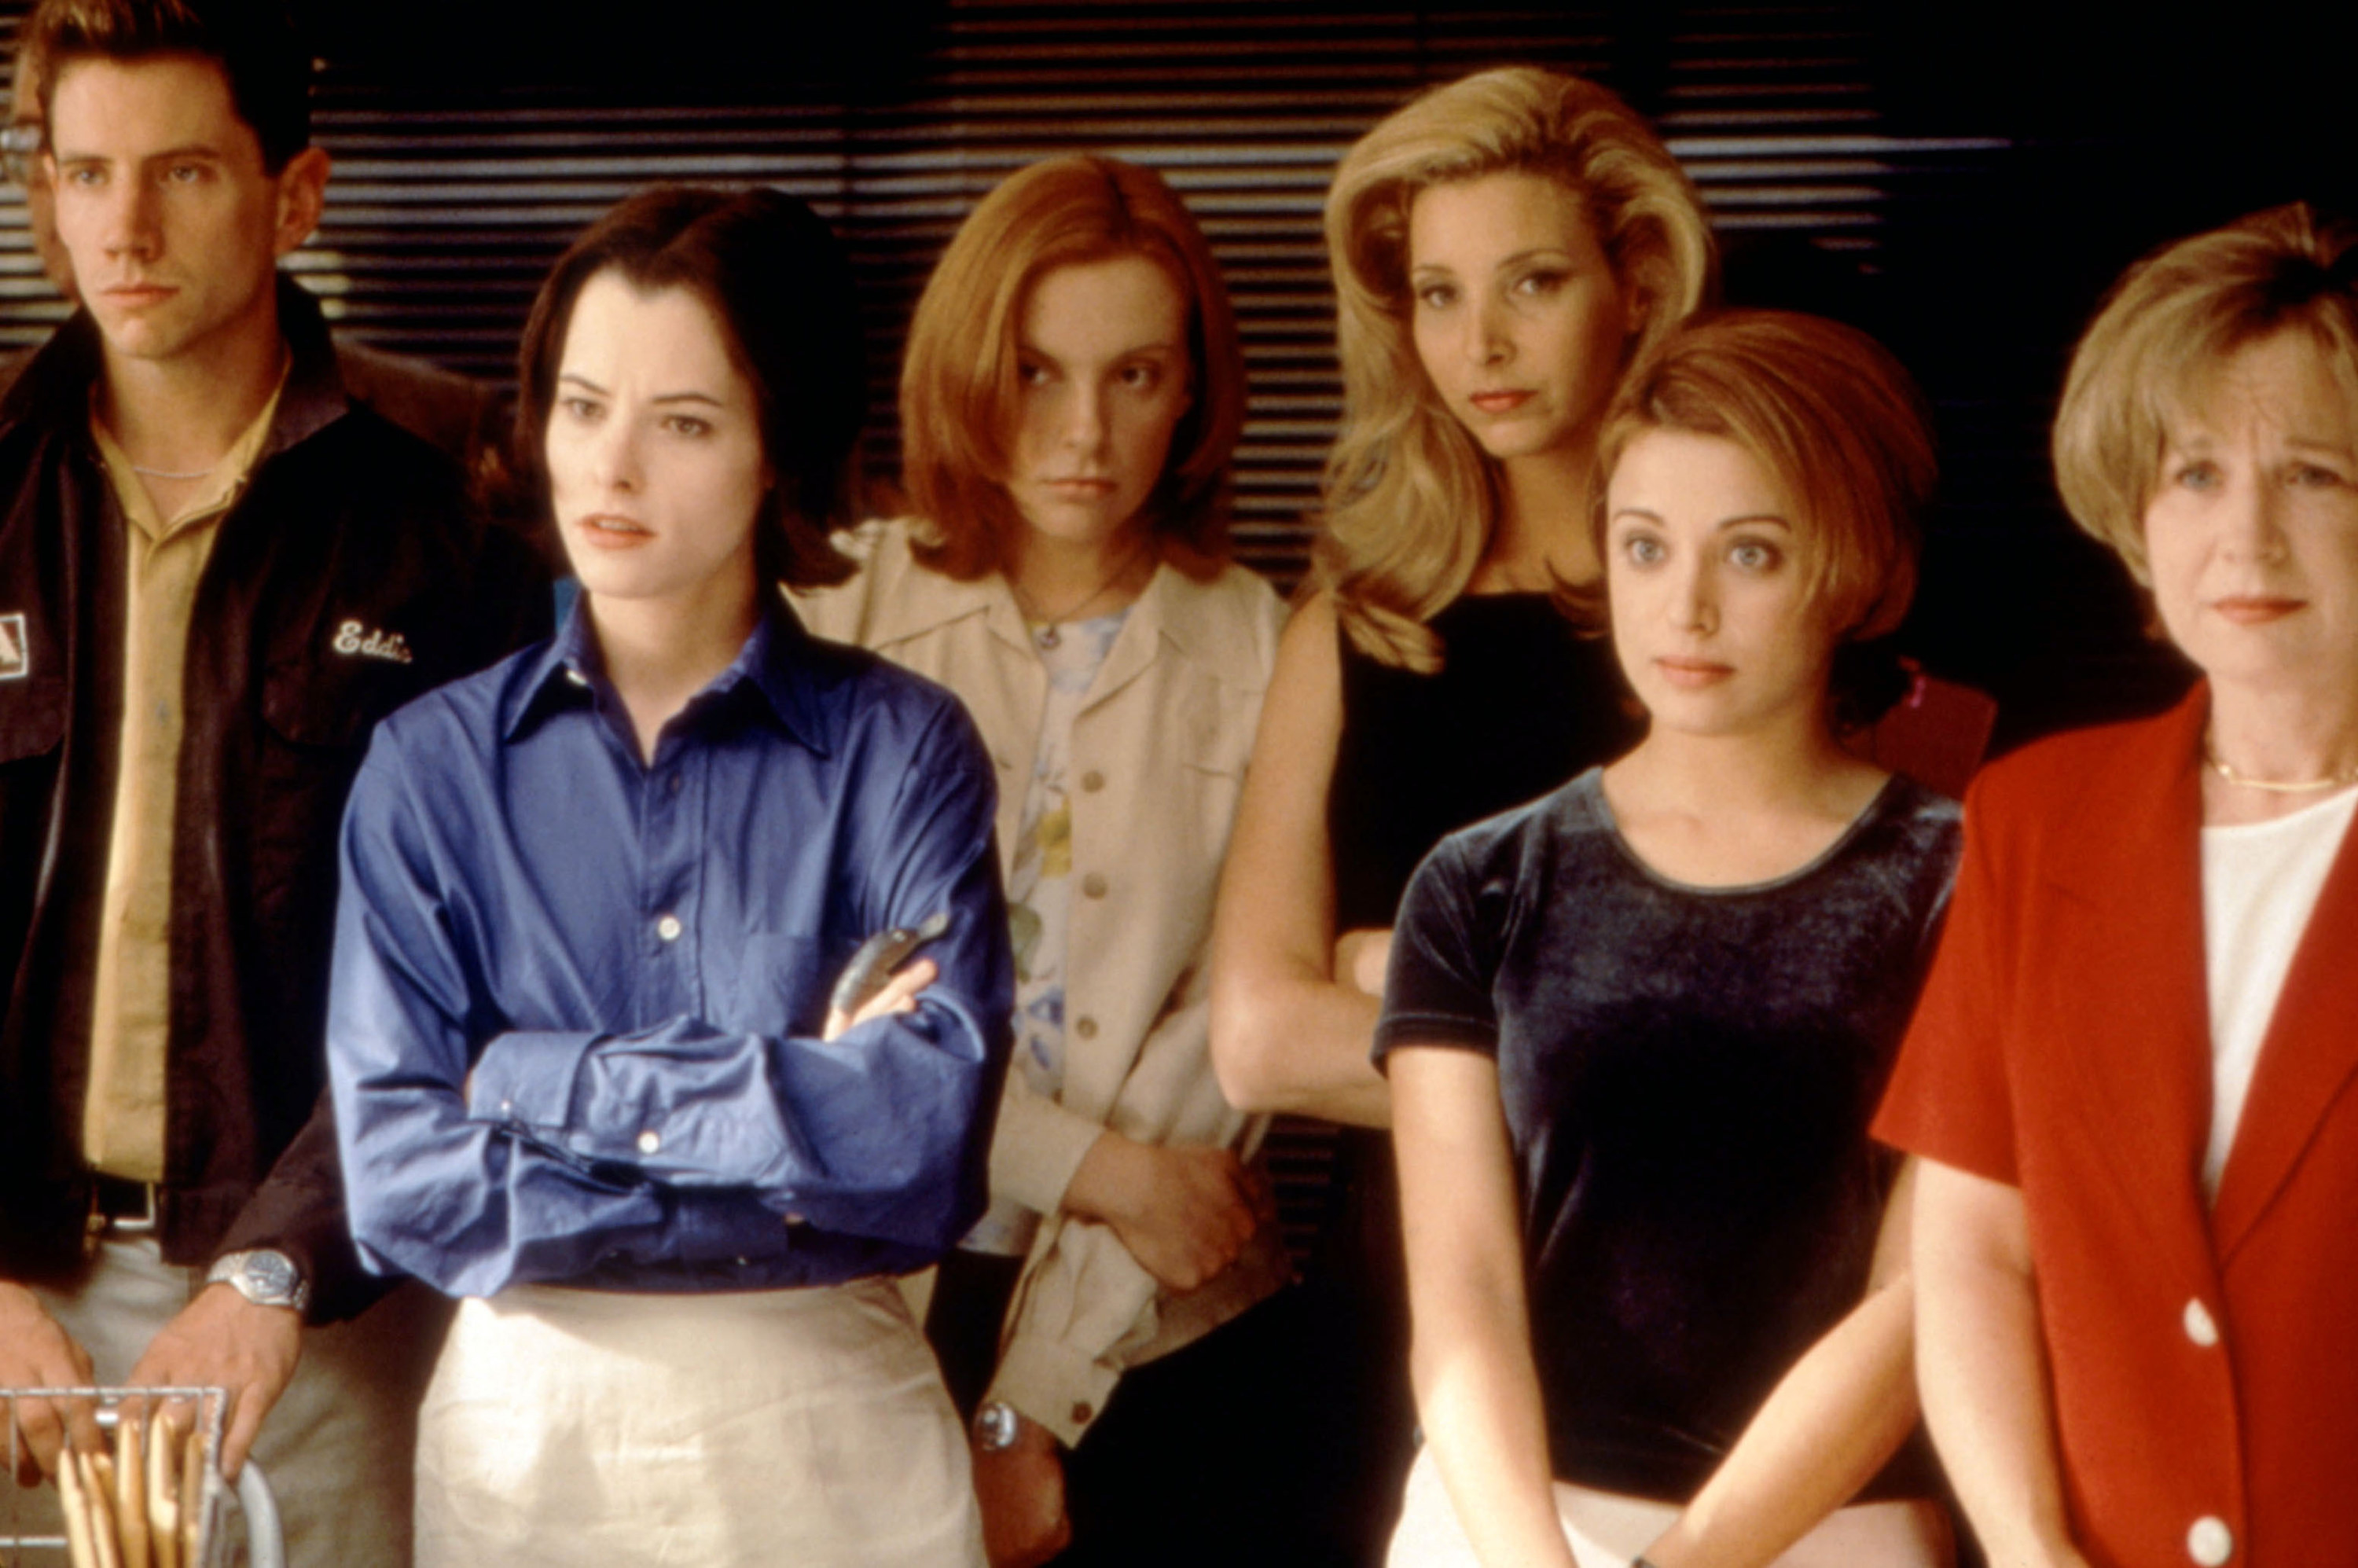 Jamie Kennedy, Parker Posey, Toni Collettte, Lisa Kudrow, Alanna Ubach, and Debra Jo Rupp all stare at something off camera